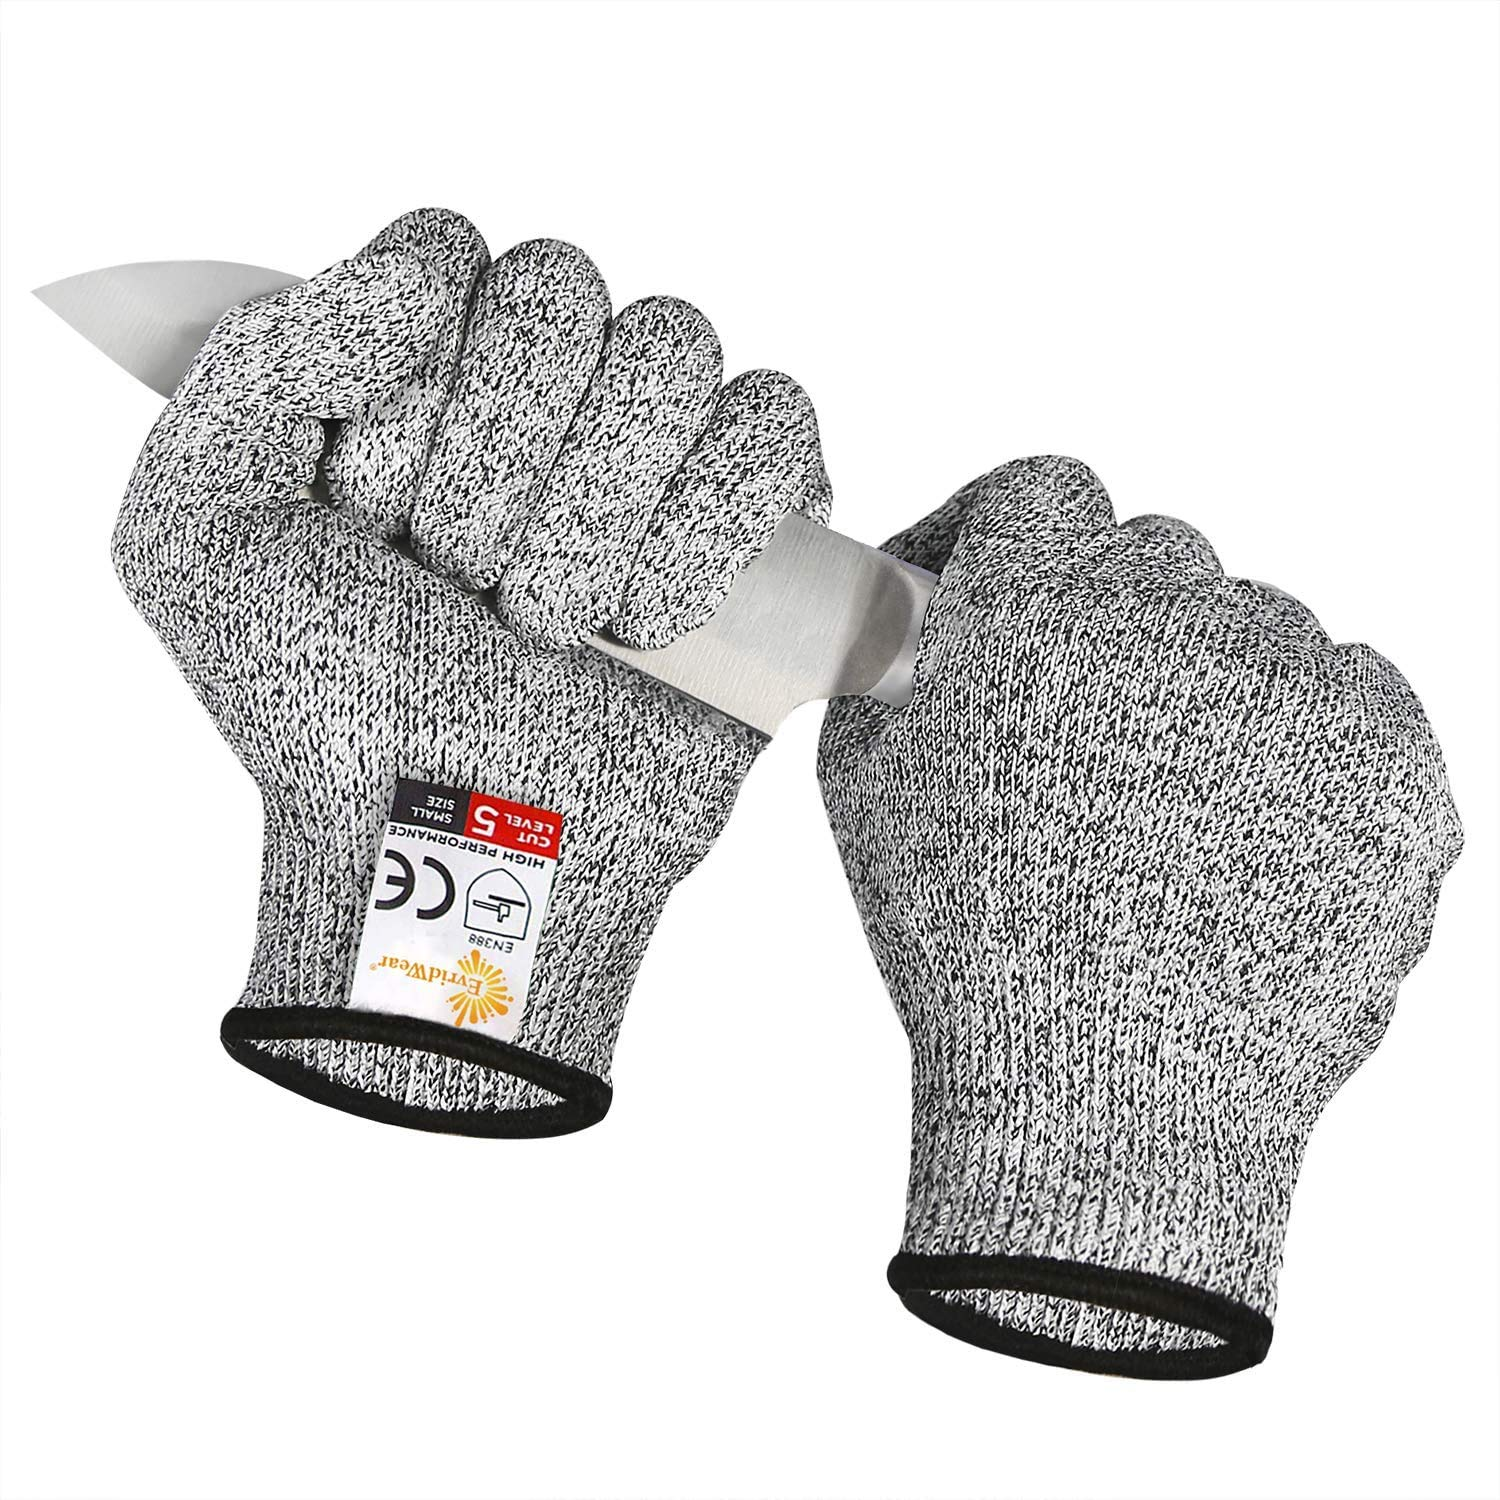 EVRIDWEAR Cut Resistant Gloves, Food Grade Level 5 Safety Protection Kitchen Cut Gloves For cutting, Chopping, Fish Fillet, Mandolin Slicing and Yard-Work Thin & Lightweight(Grey, Small)